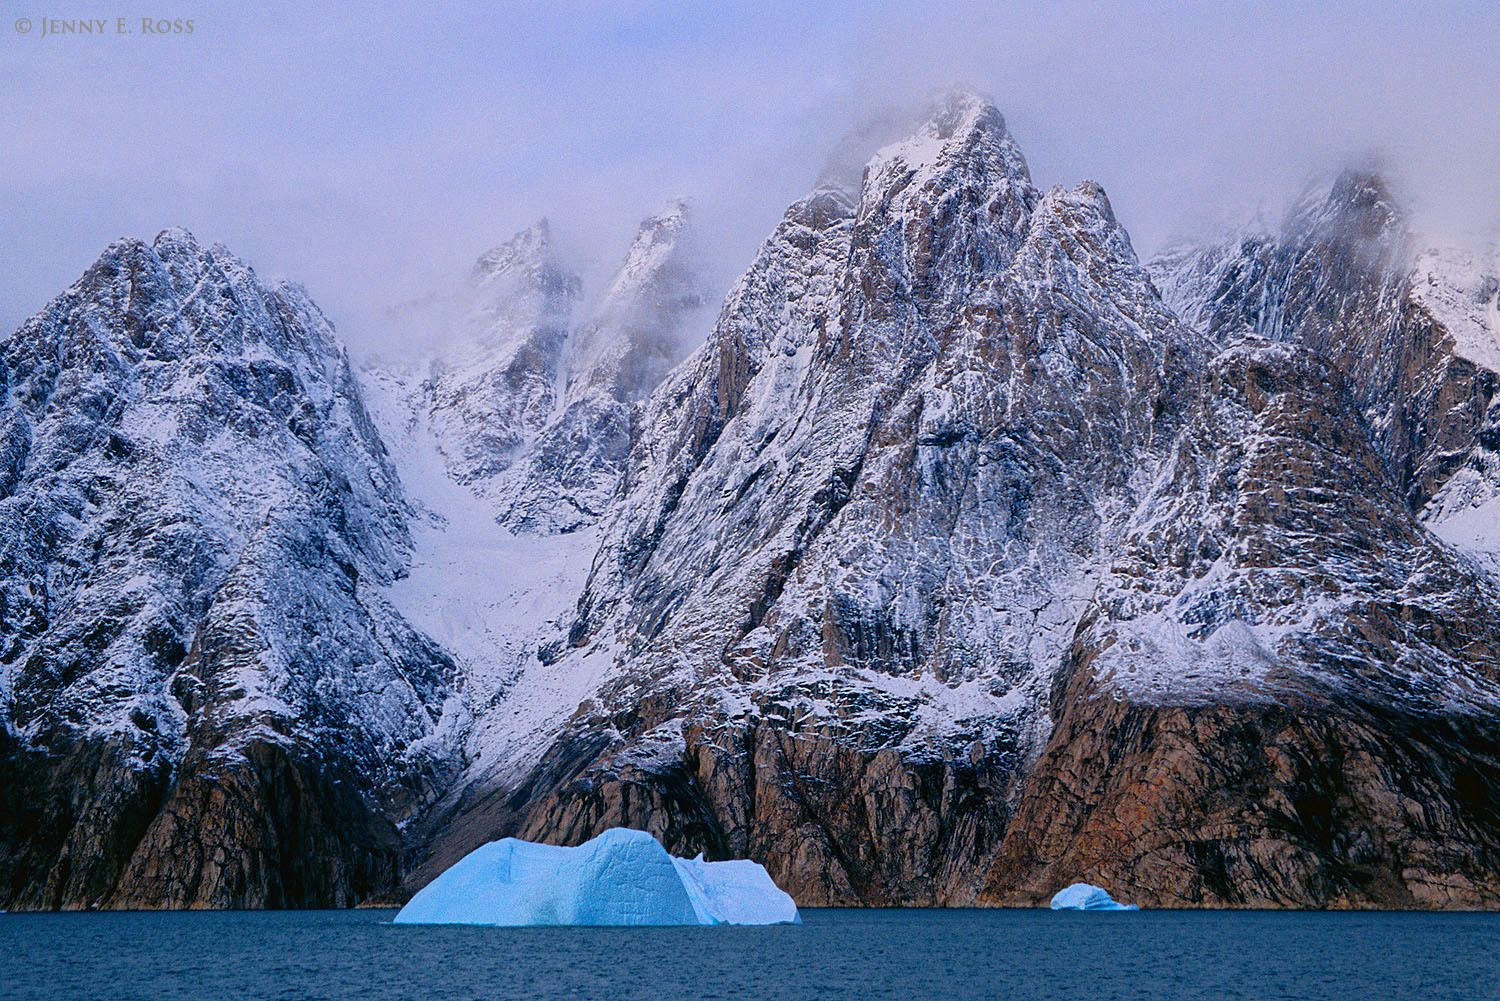 Fog-shrouded mountain spires dusted with snow soar above melting icebergs in Ofjord within Scoresby Sund, East Greenland.